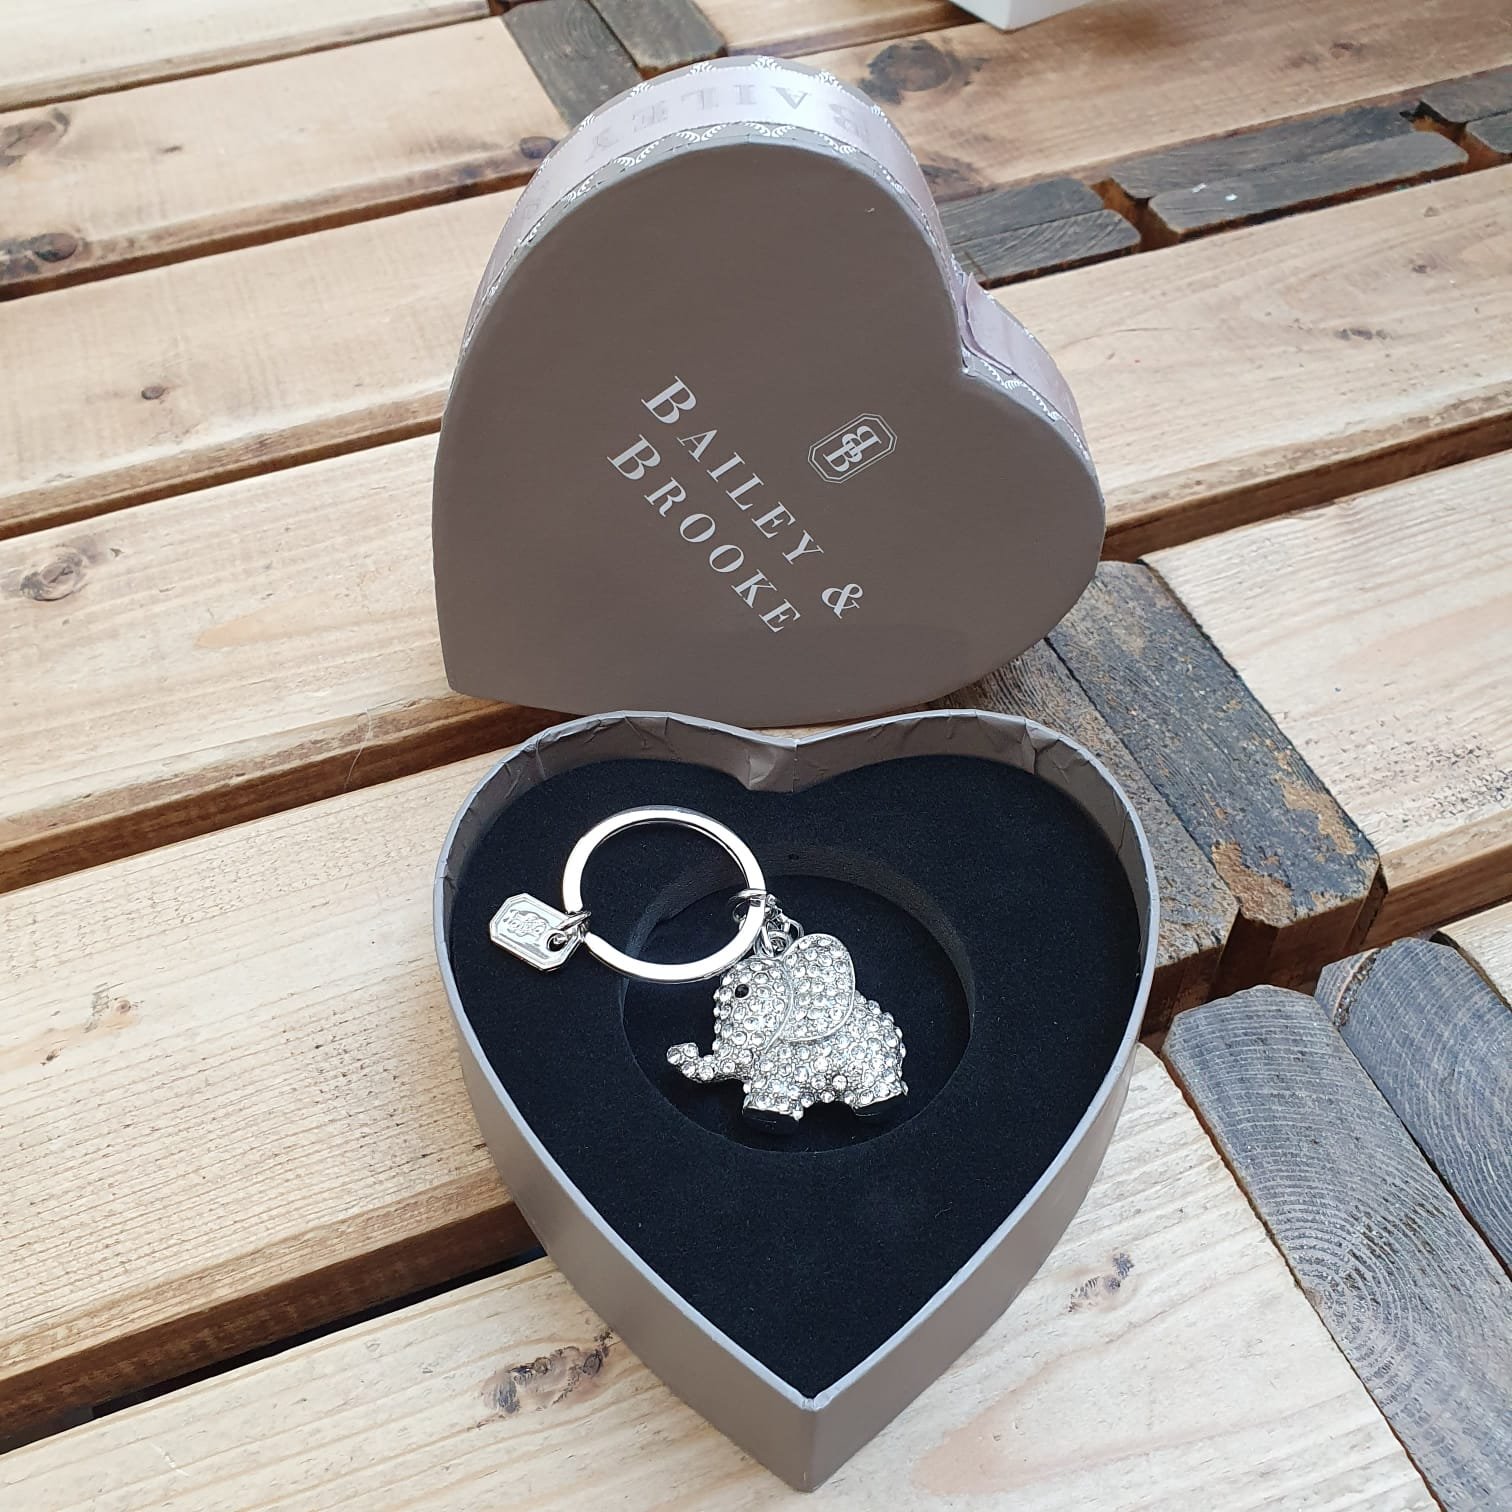 Sparkling elephant Keyring by the lovely brand Bailey & Brooke.   Add some sparkle to your keys with a Luxury hanging keyring.  Beautifully presented in a Bailey & Brooke gift box. It will make a wonderful gift.